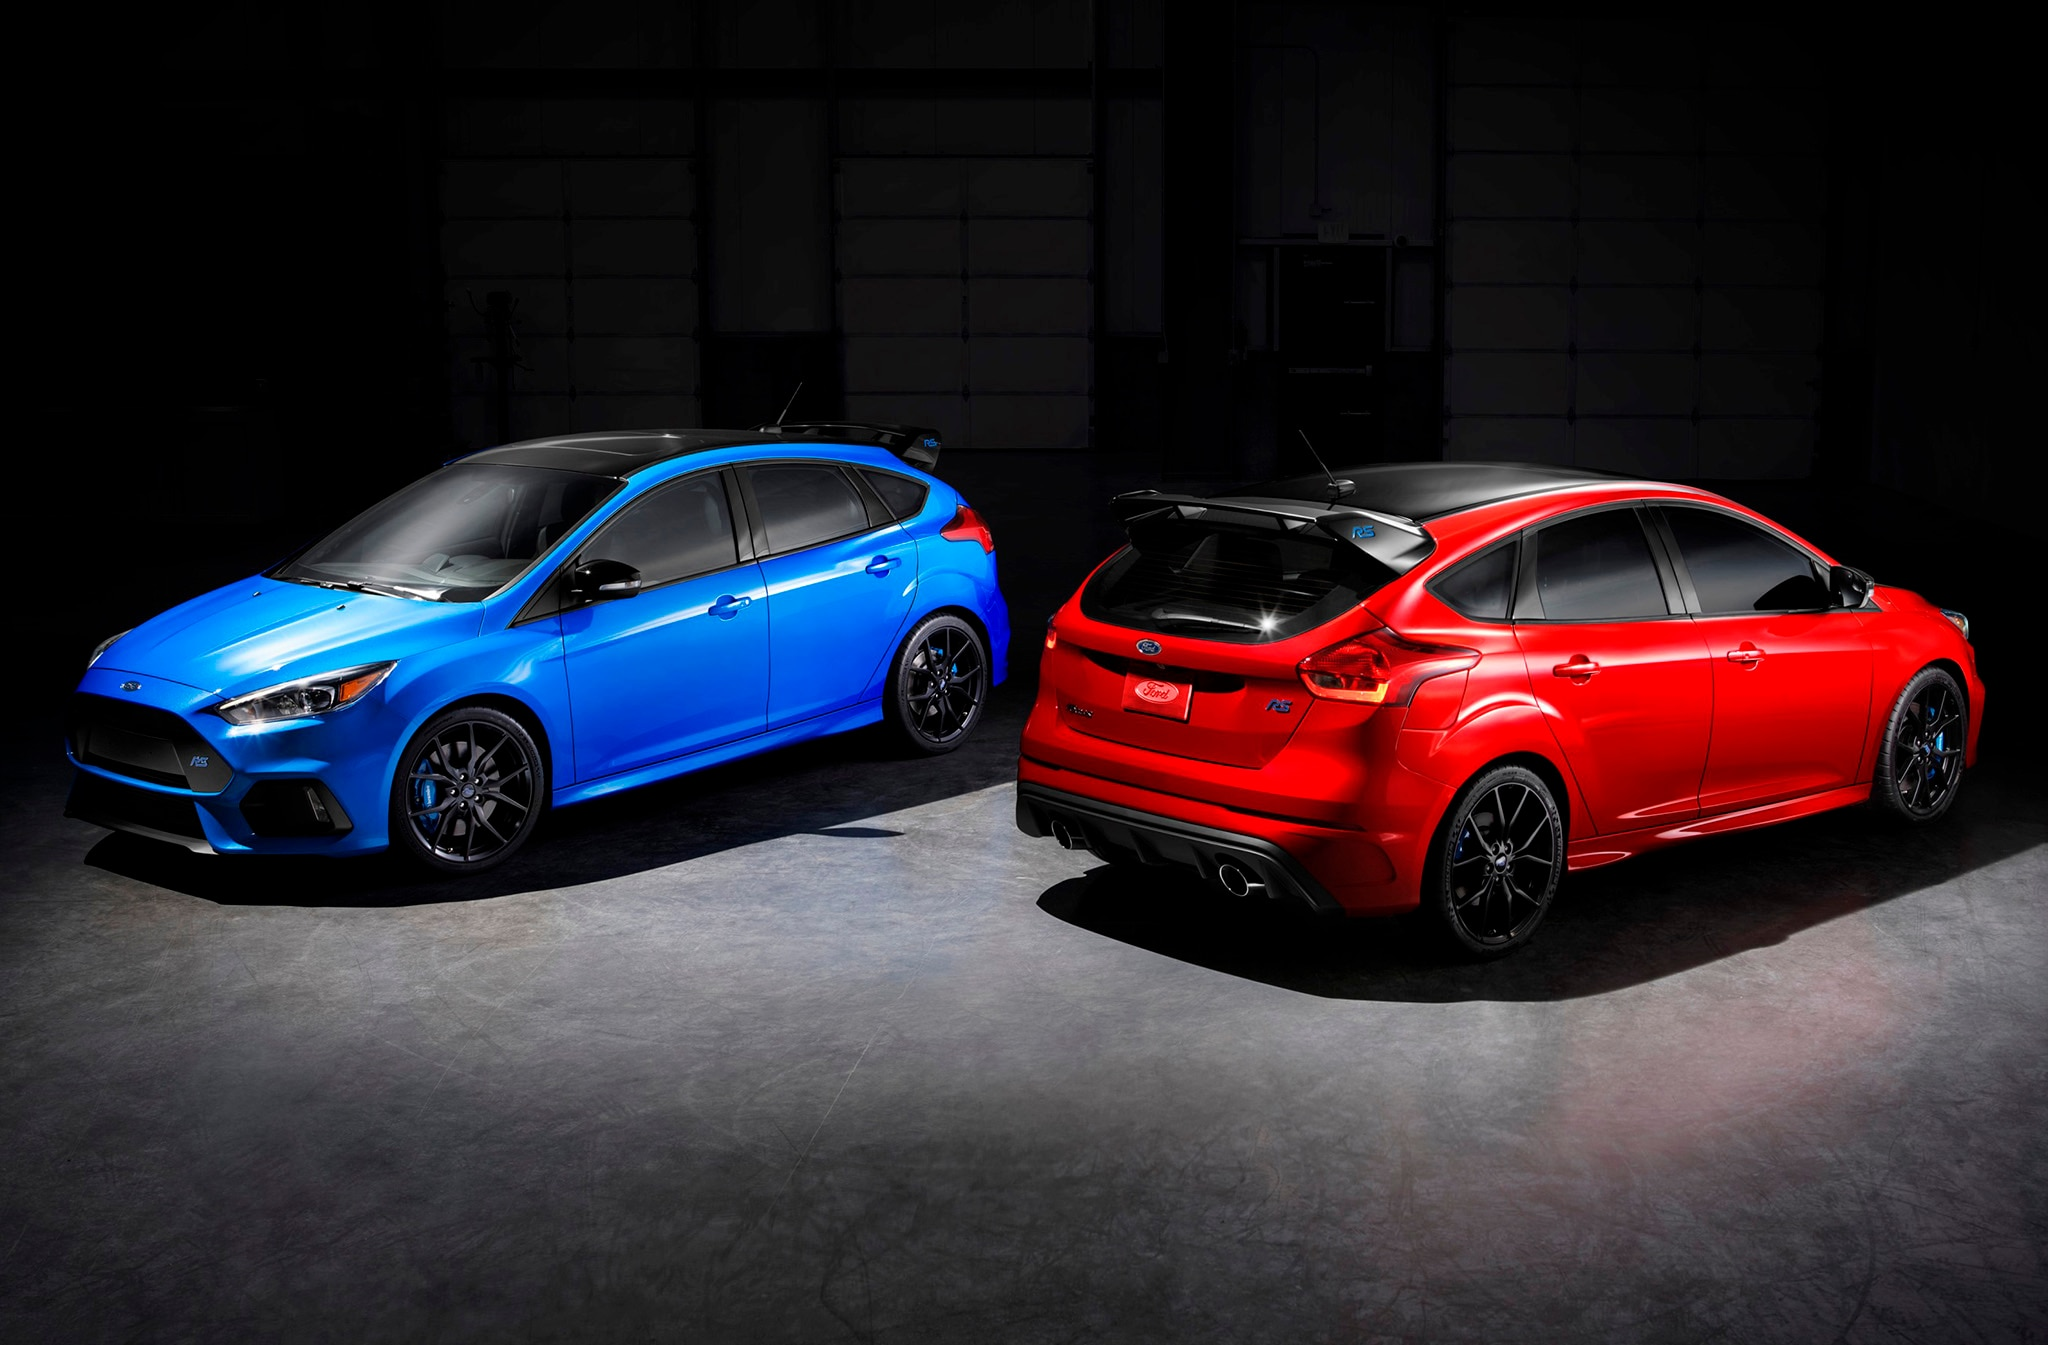 Ford Unveils Focus RS Limited Edition With Sweet Red Paint and a Front-Axle Limited-Slip Differential